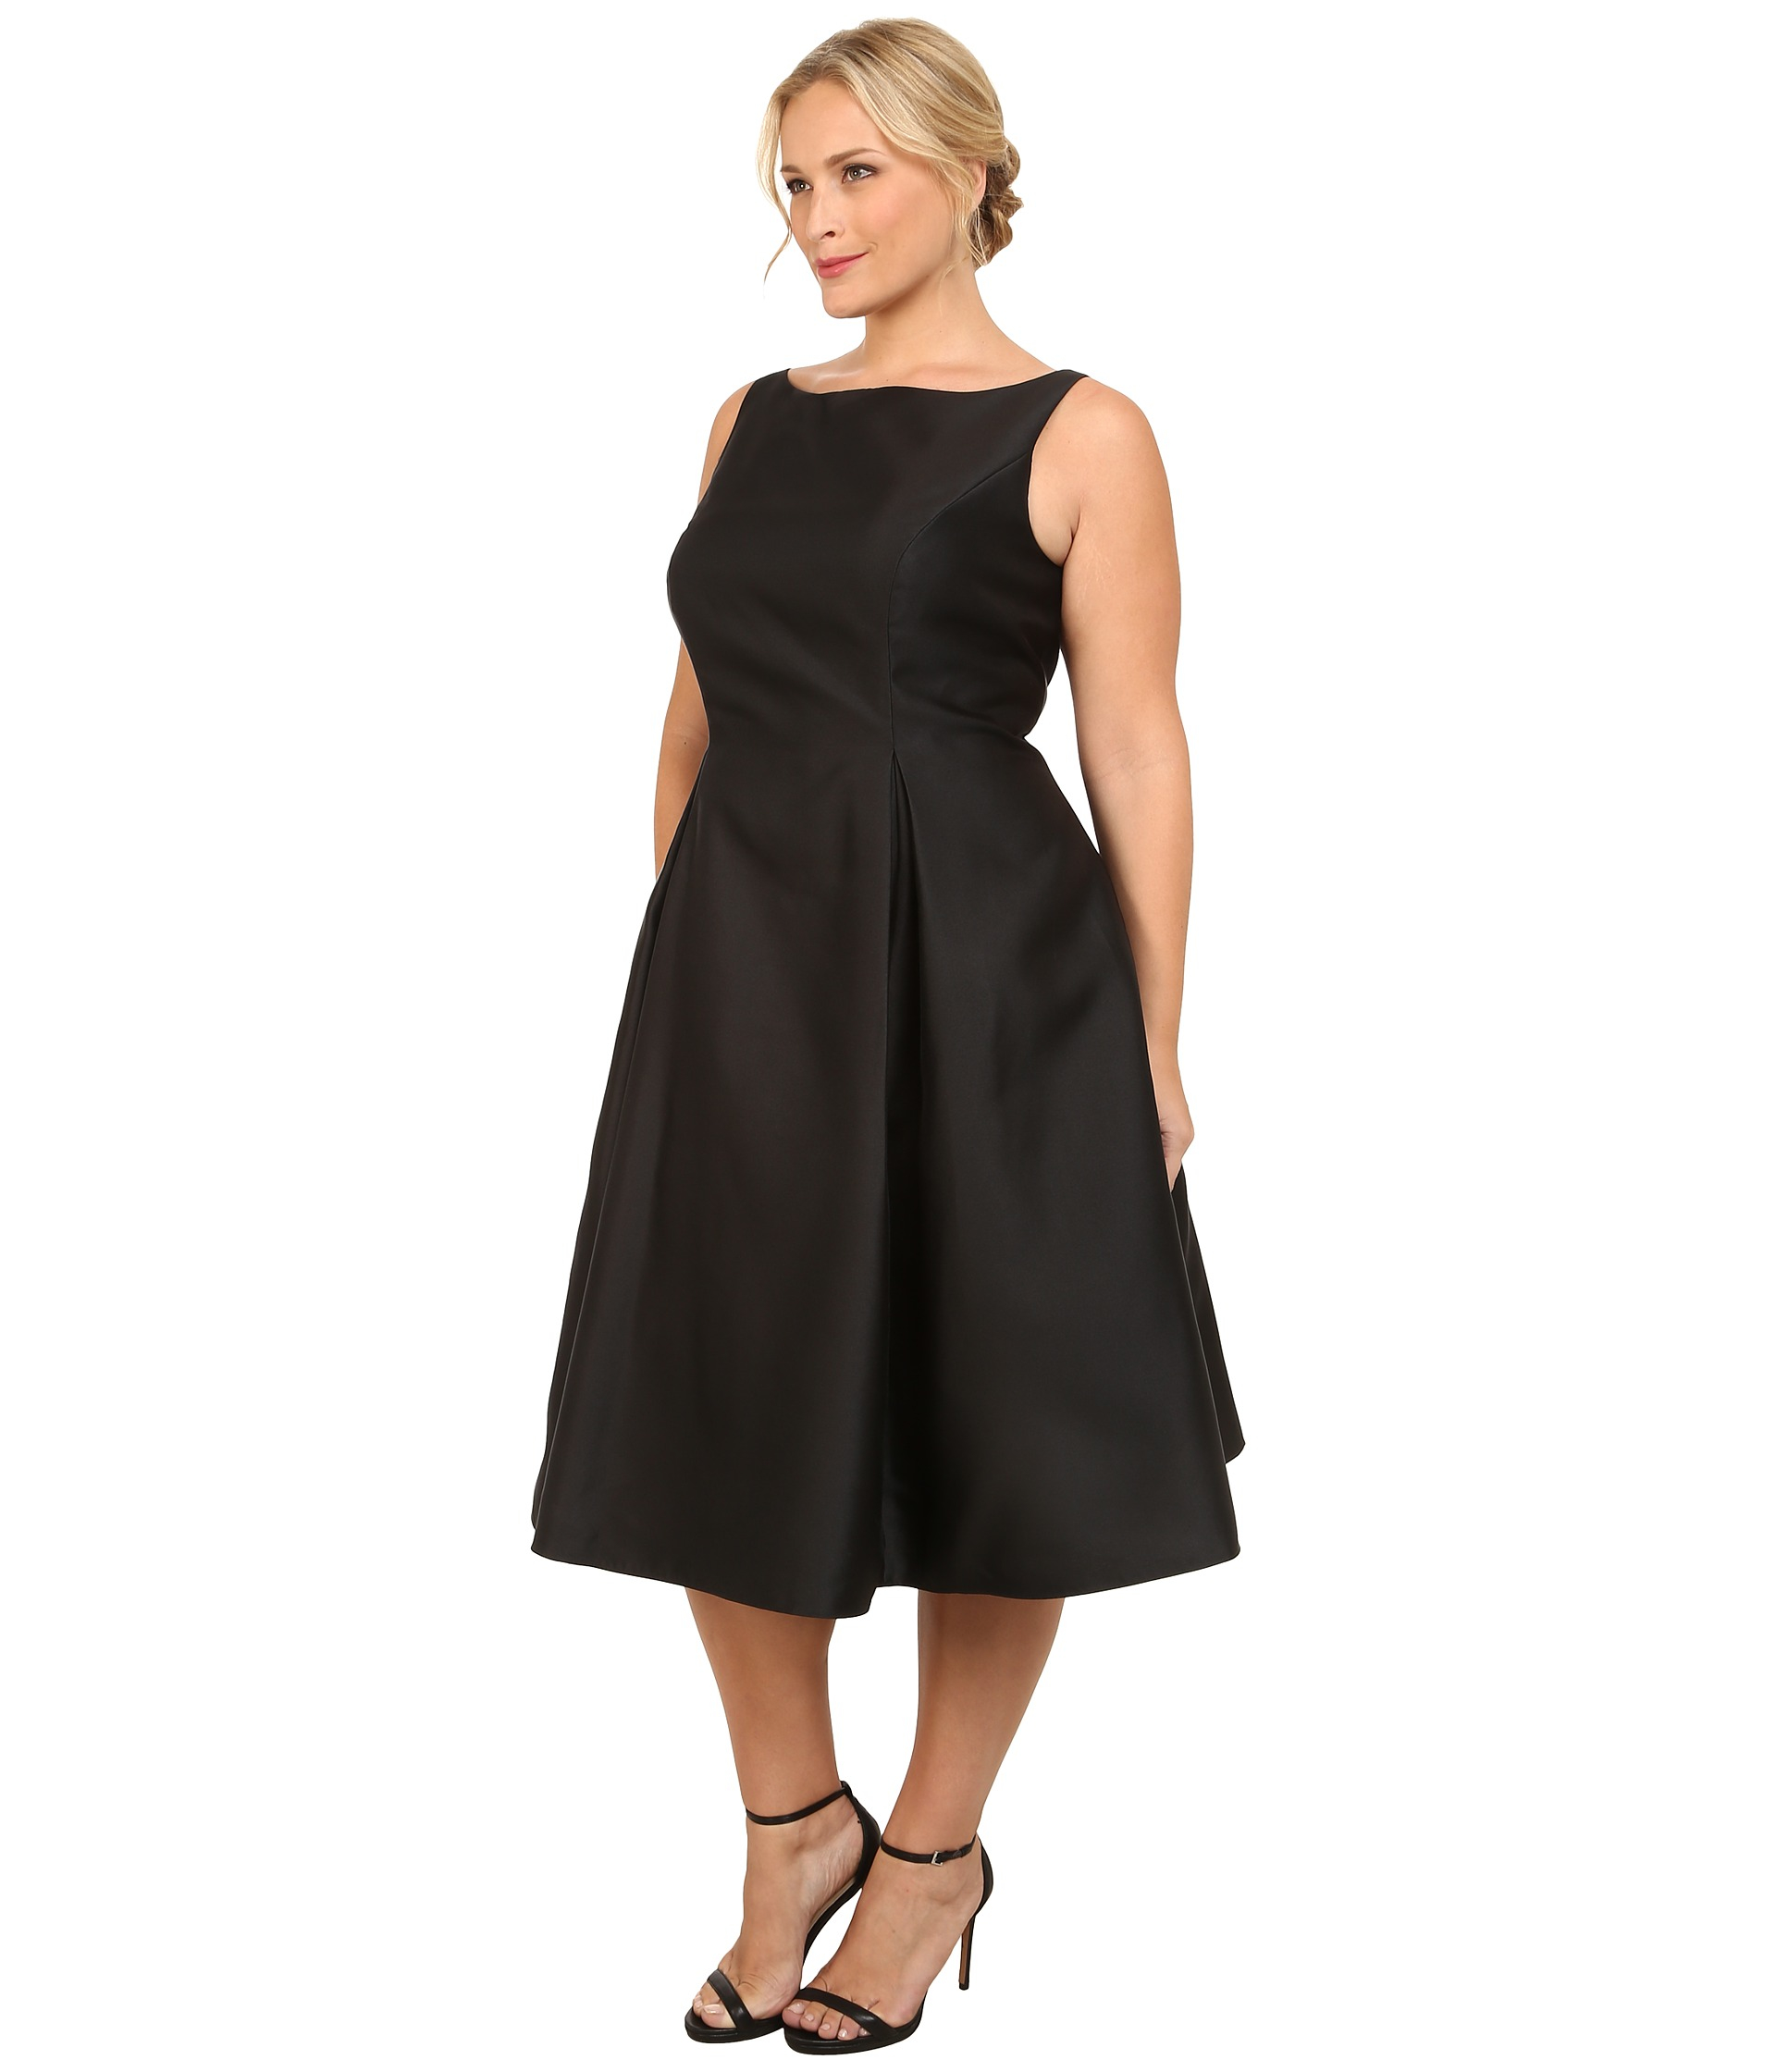 Lyst - Adrianna Papell Plus Size Sleeveless Tea Length ...